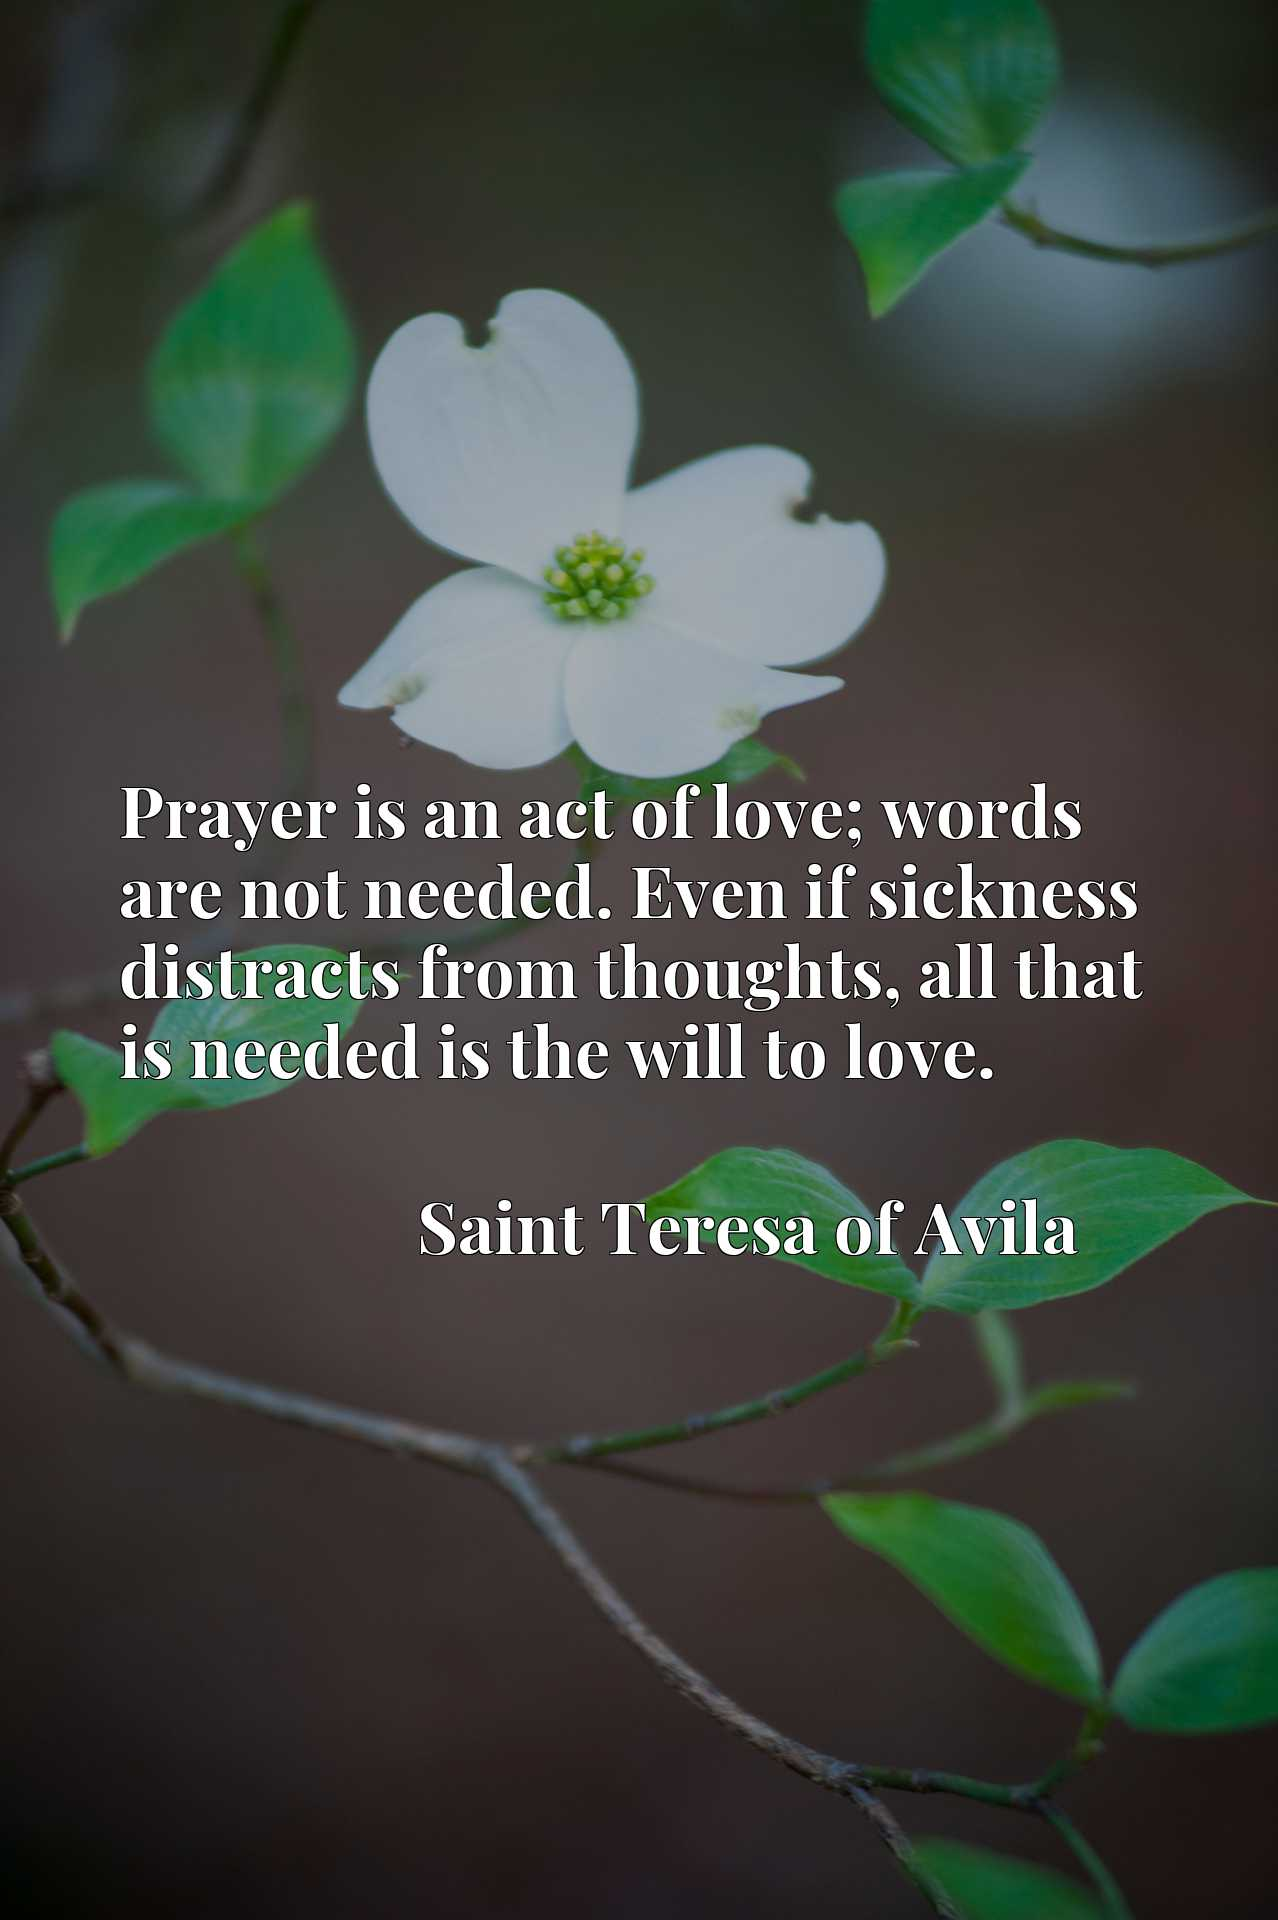 Quote Picture :Prayer is an act of love; words are not needed. Even if sickness distracts from thoughts, all that is needed is the will to love.